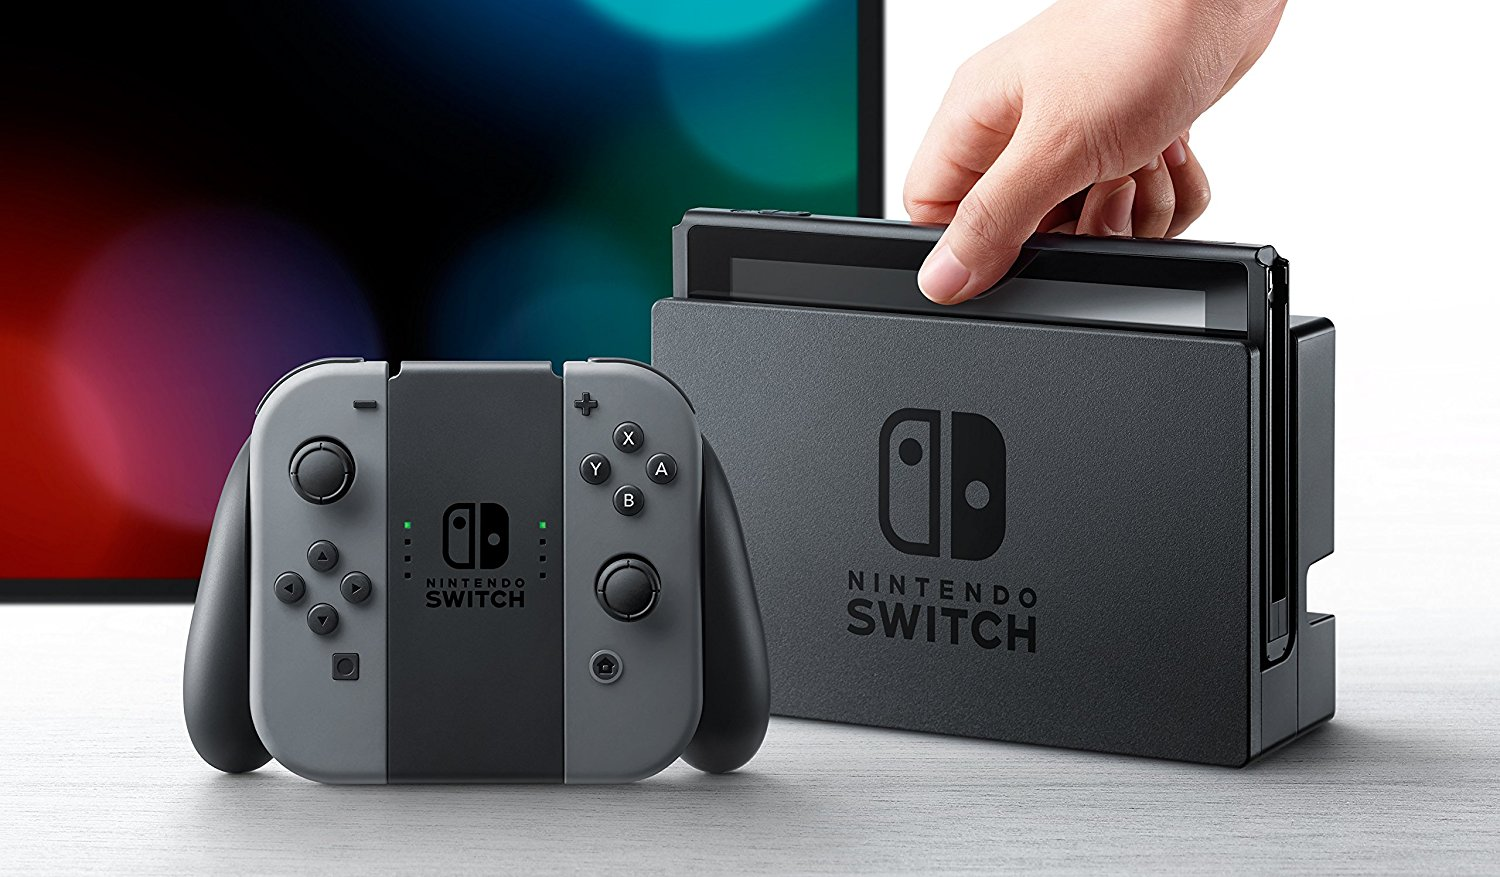 Nintendo Switch ya permite grabar vídeo